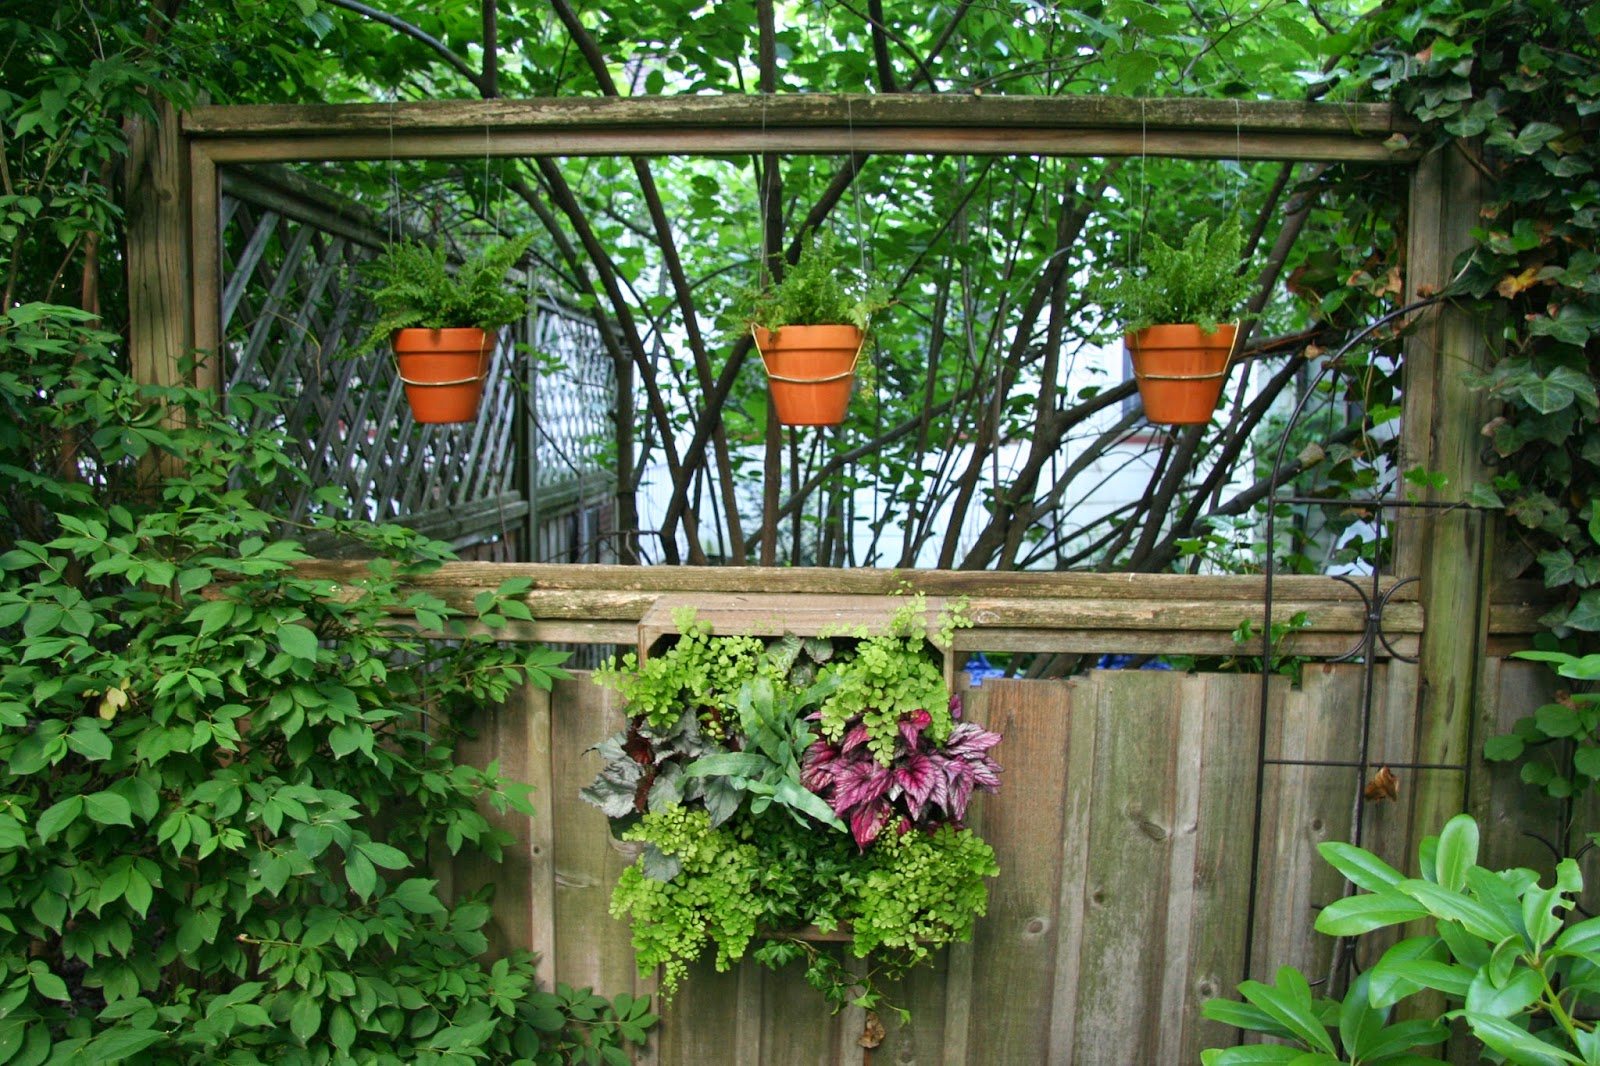 Daffodils daydreams how to dress up a dilapidated fence for Vertical garden panels